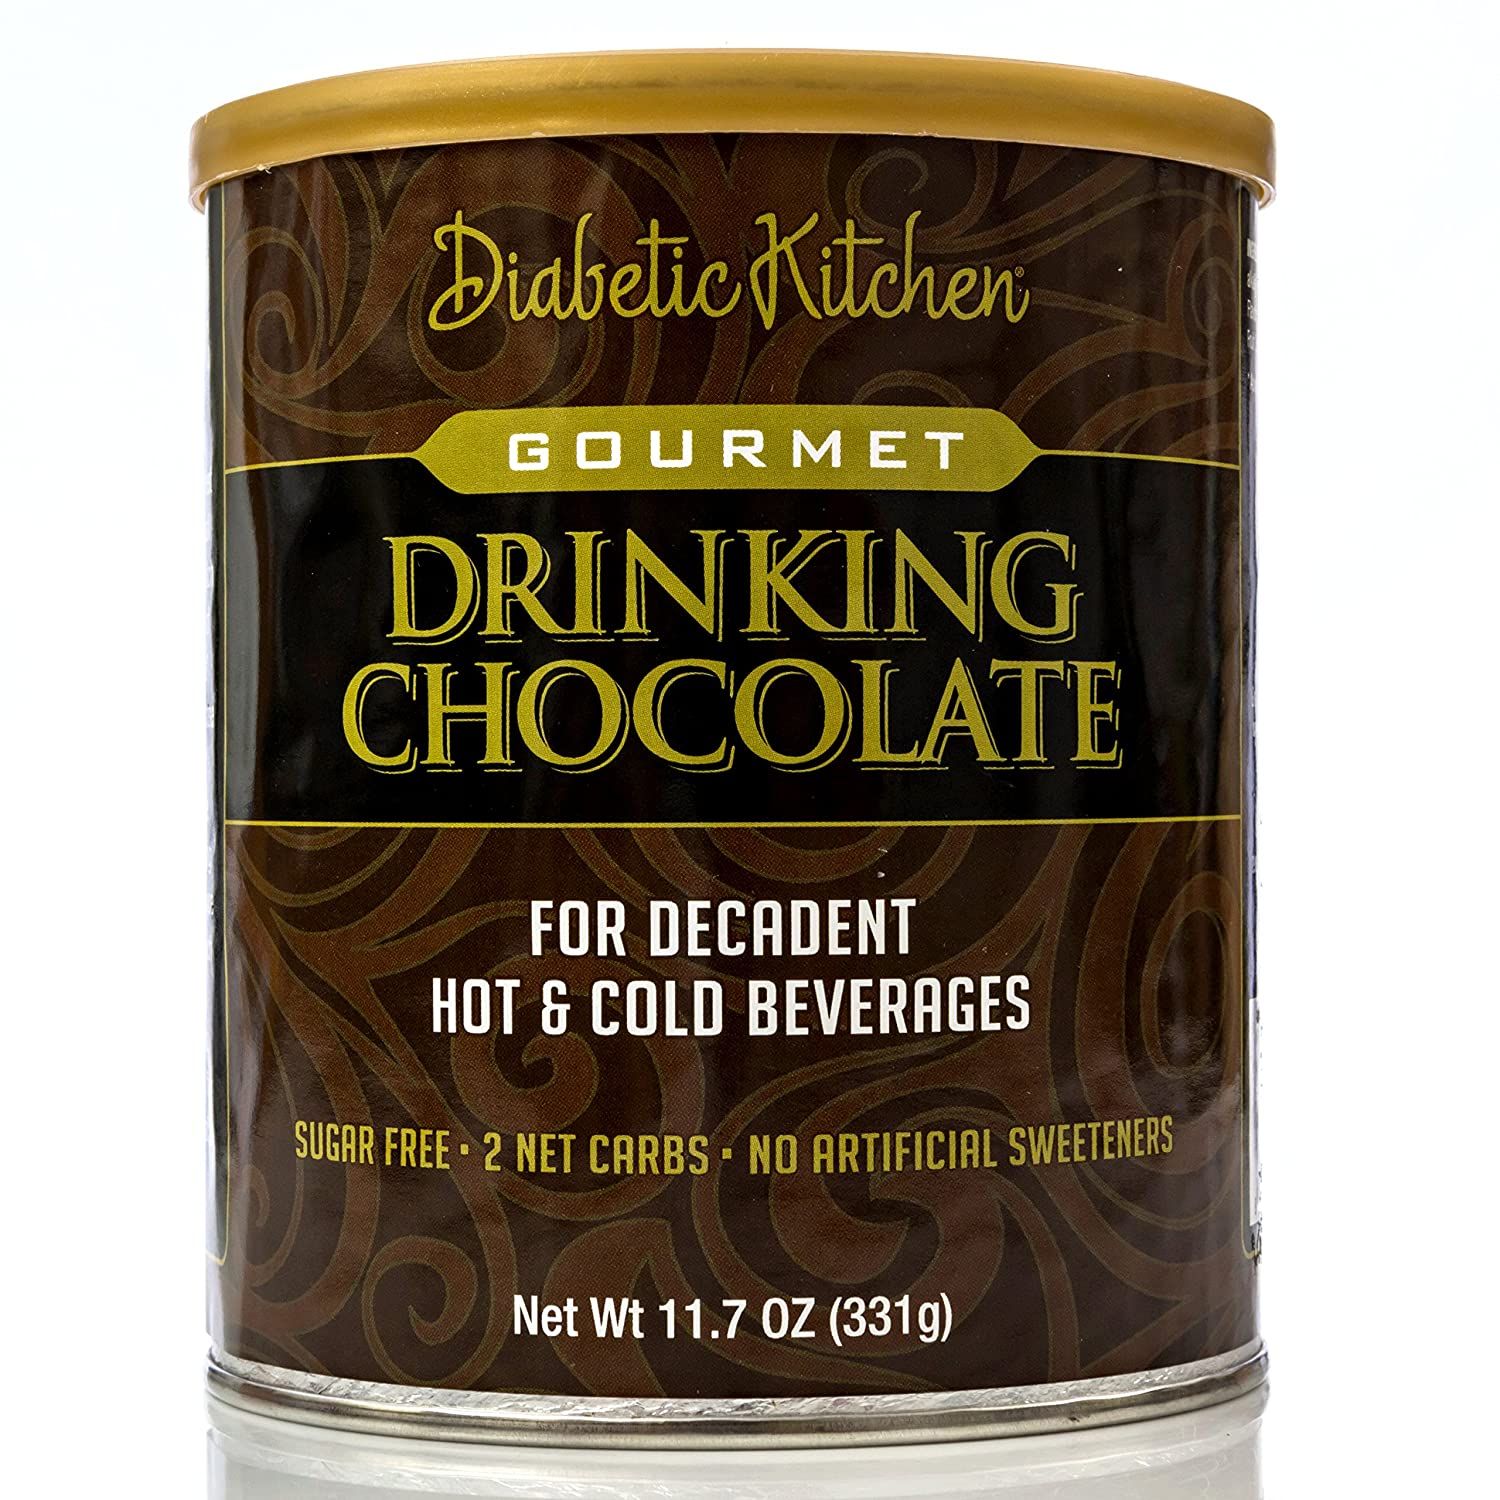 Diabetic Kitchen Gourmet Drinking Chocolate For A Decadent Hot Or Cold Drink That Is Sugar-Free, Low-Carb, Keto-Friendly, No Artificial Sweeteners or Sugar Alcohols (22 Servings)